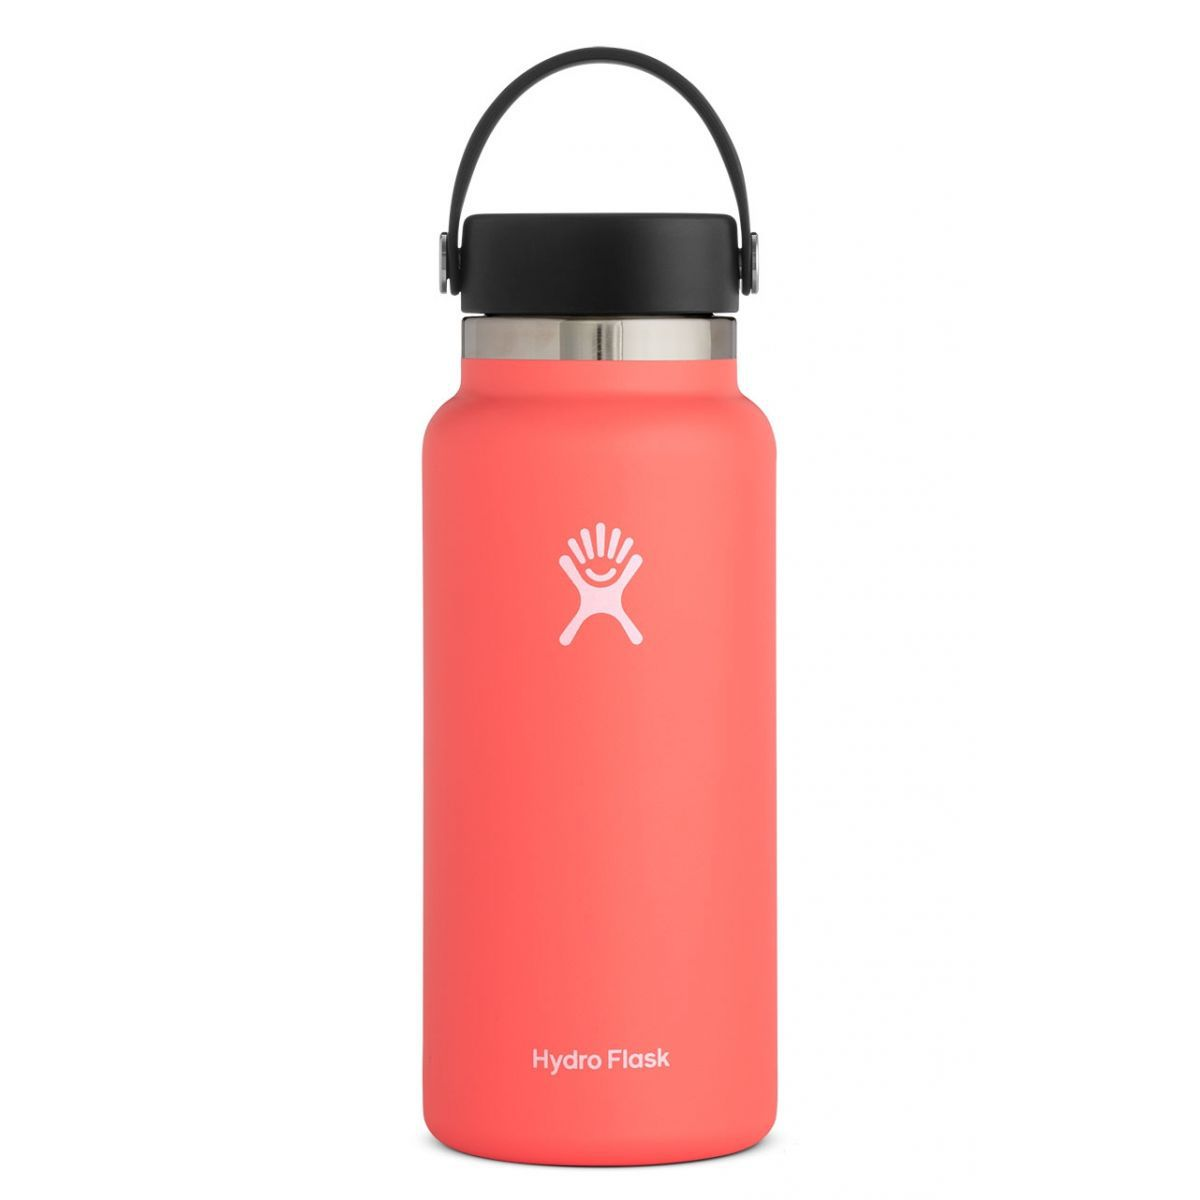 Hydroflask 32-Ounce Wide Mouth Water Bottle